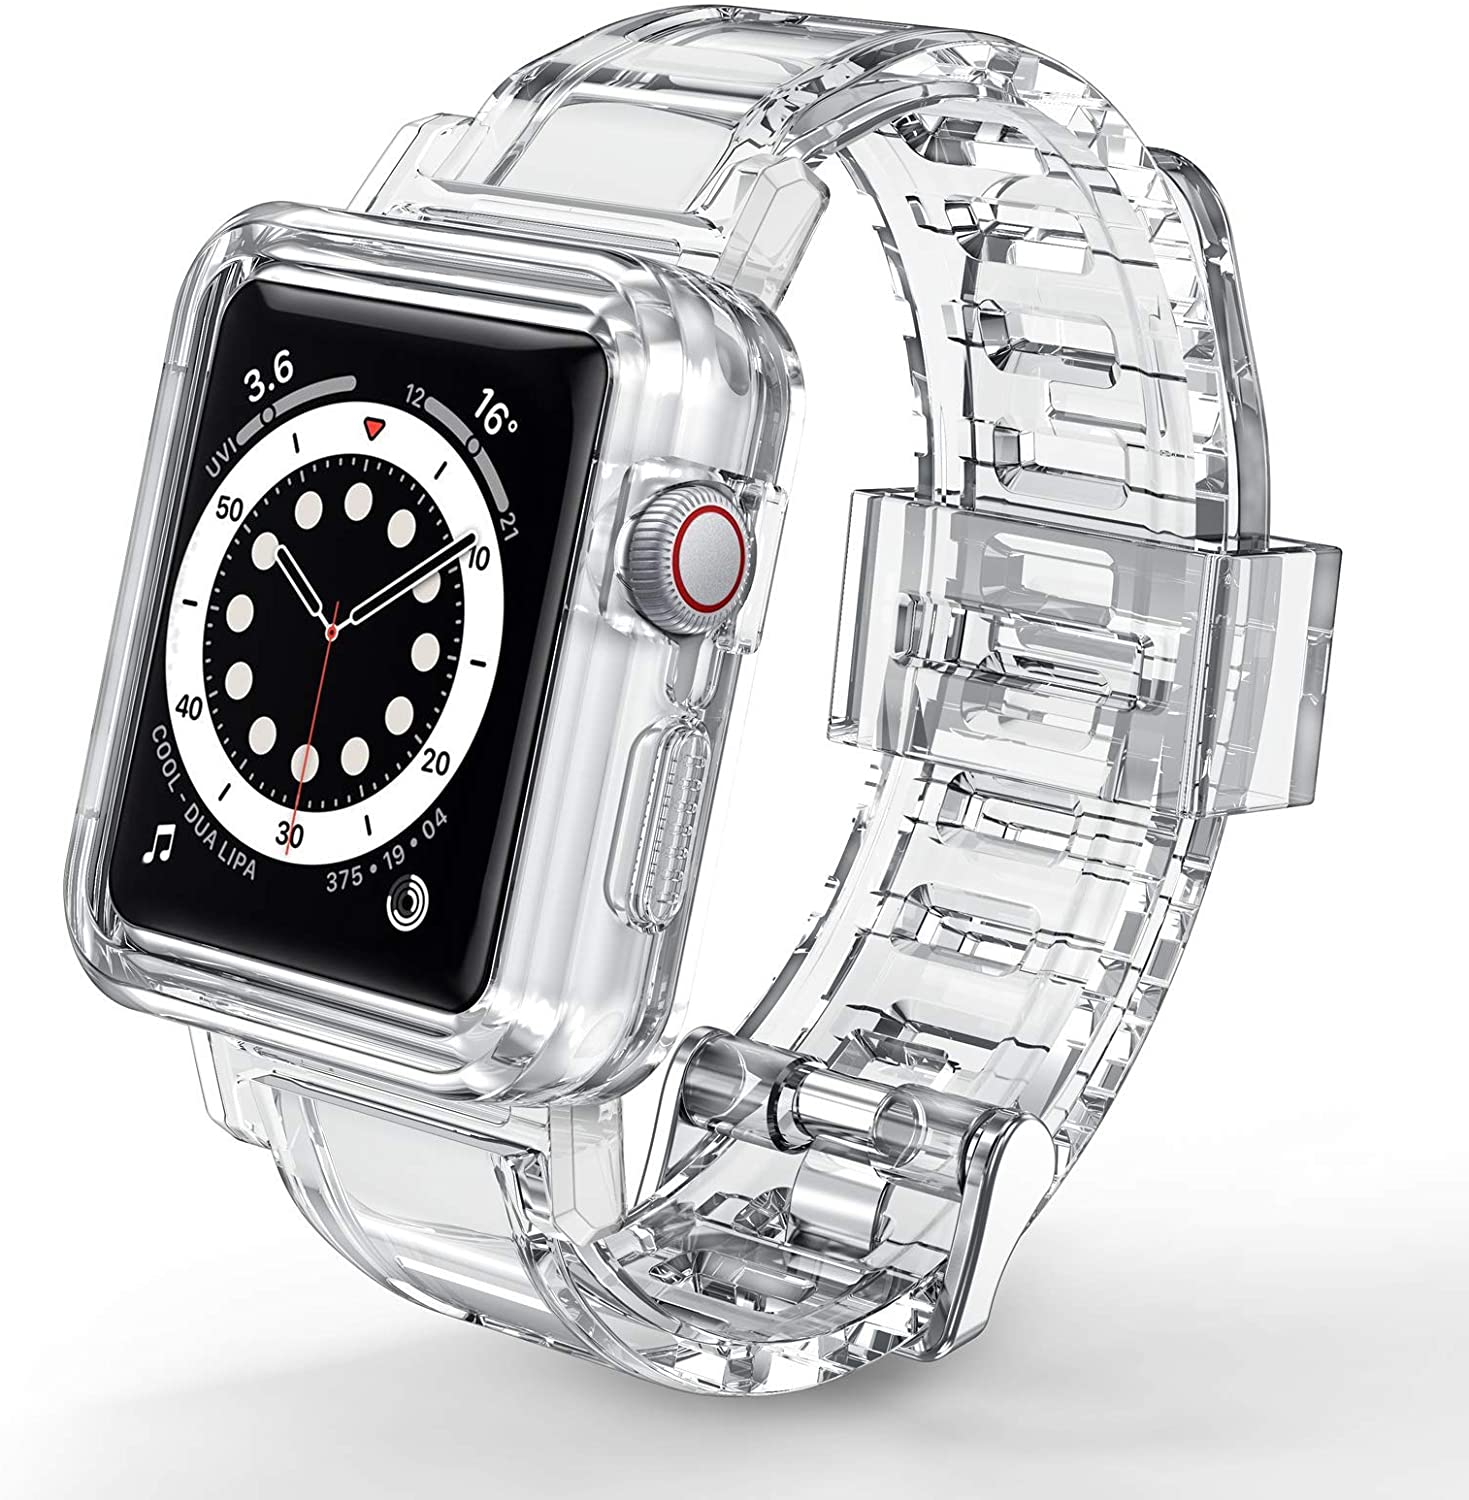 JAKPAK Compatible with Apple Watch Bands Case 42mm 44mm for Men Women, Crystal Clear Protect Sports Wristband Bumper Strap iWatch Series 5 4 3 2 1 42mm 44mm